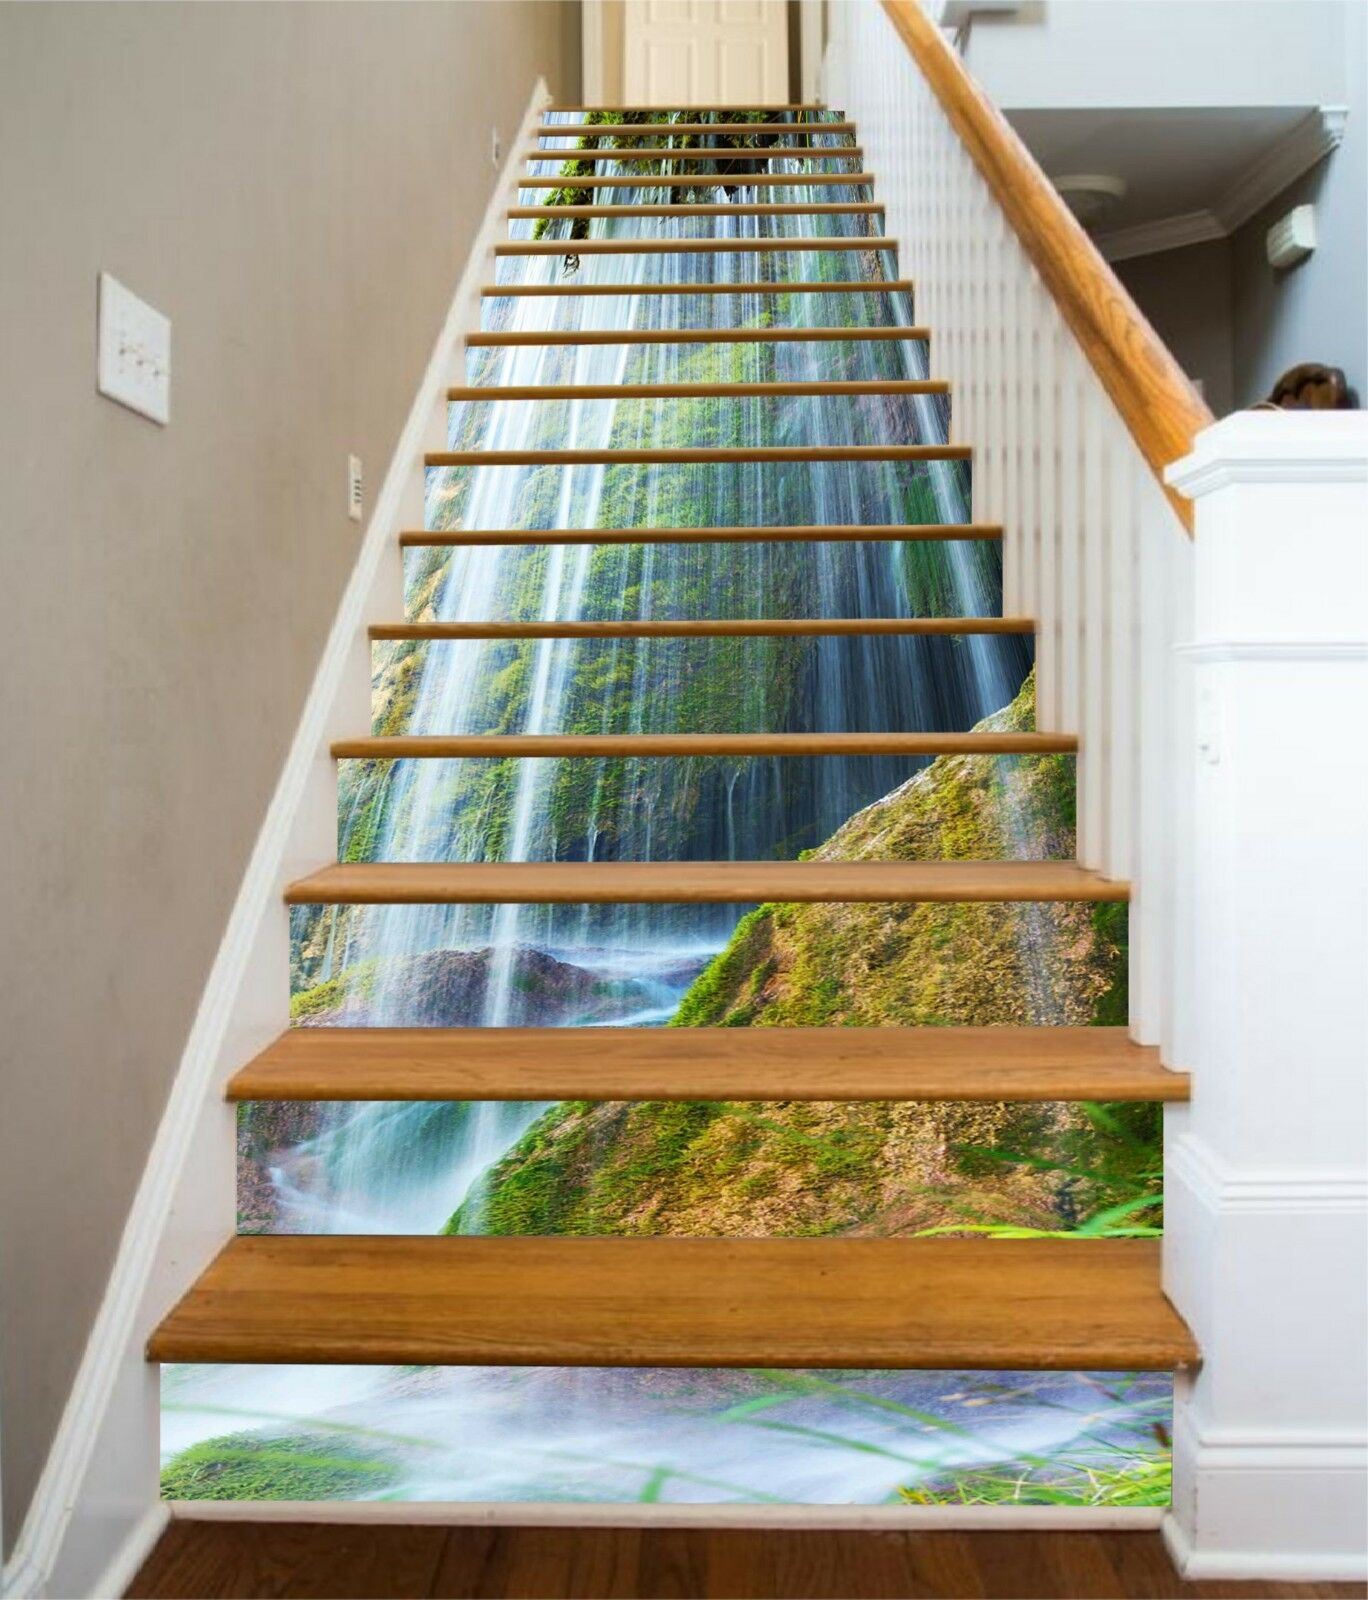 3D Sunlight River 5 Stair Risers Decoration Photo Mural Vinyl Decal Wallpaper CA